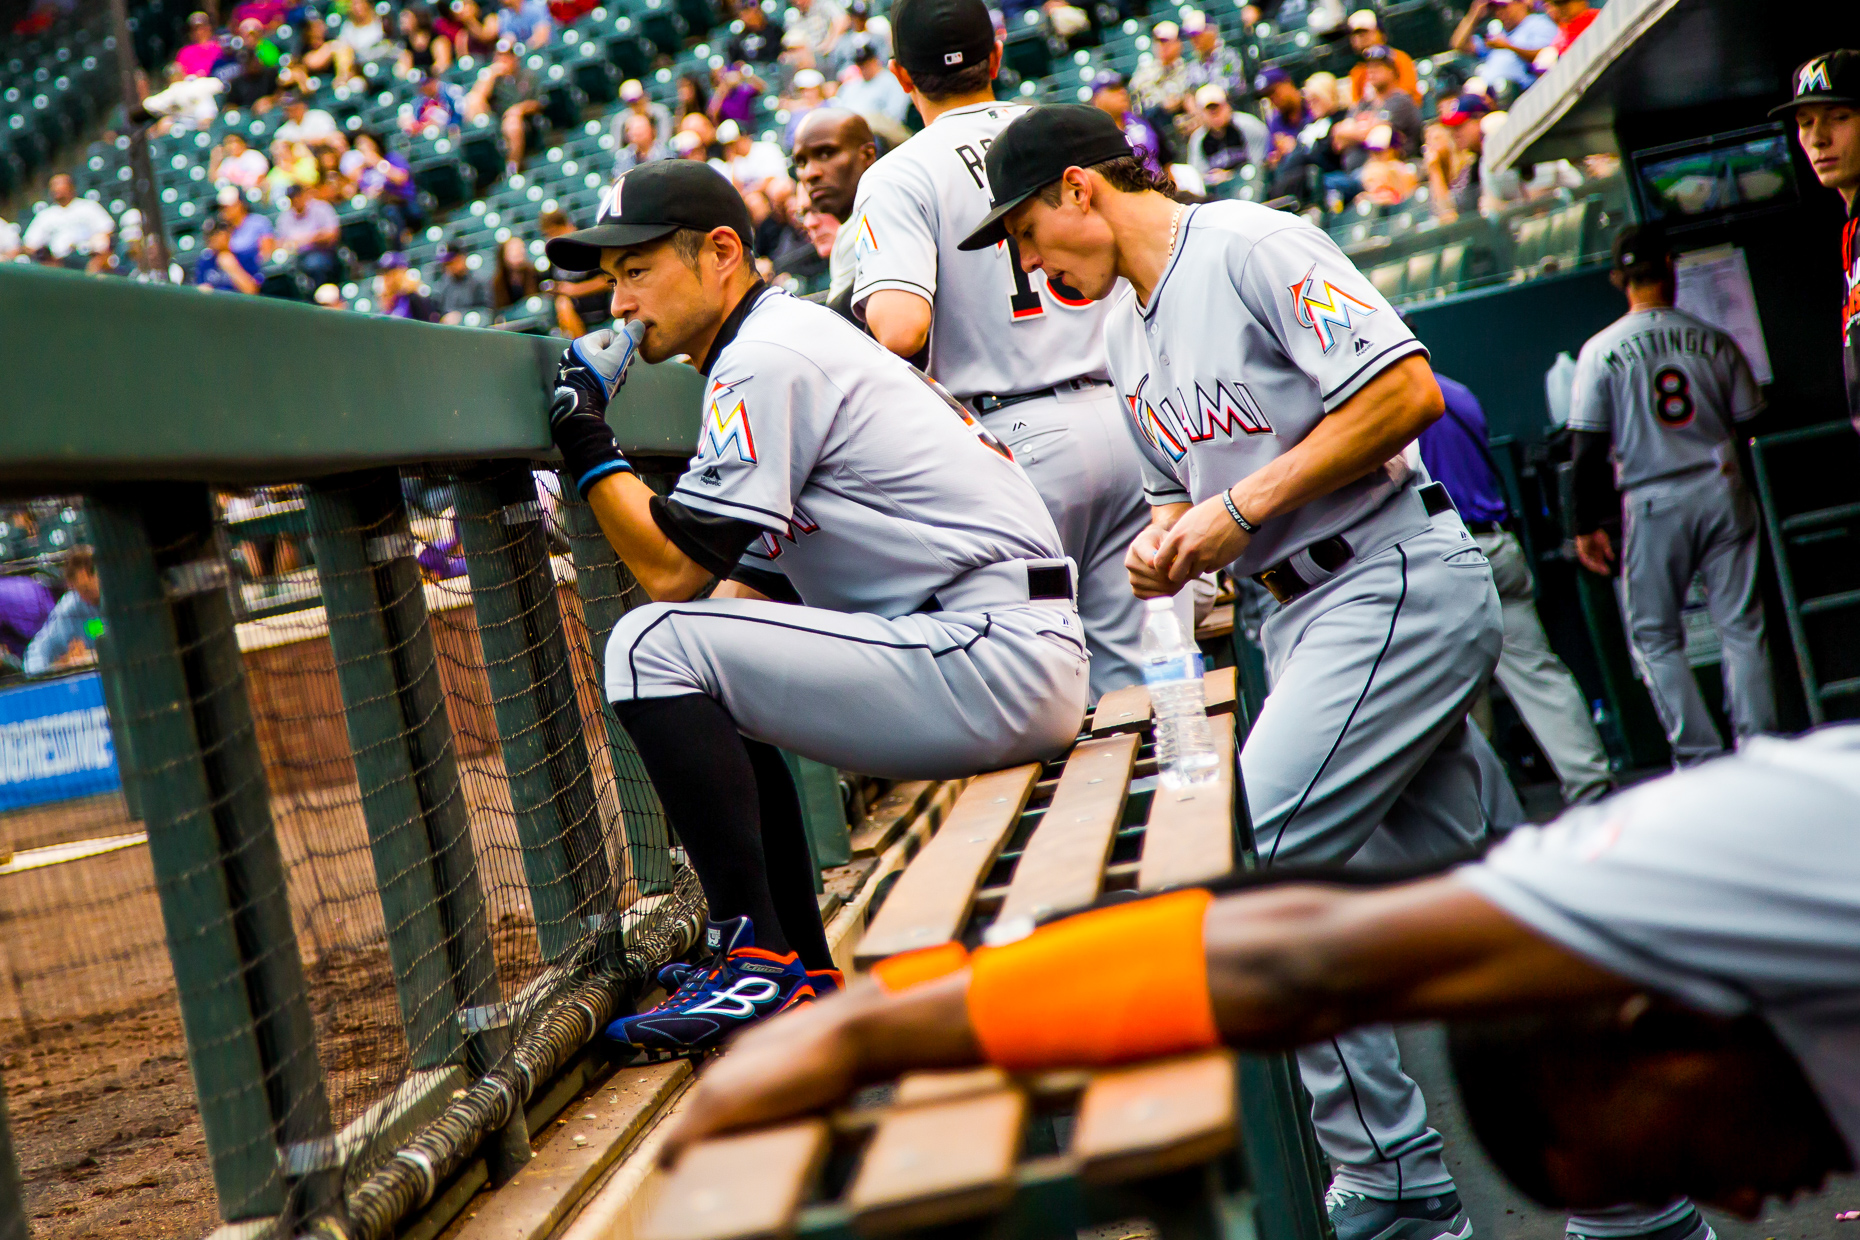 chip litherland lock and land rockies sports photography denver 0032.JPG